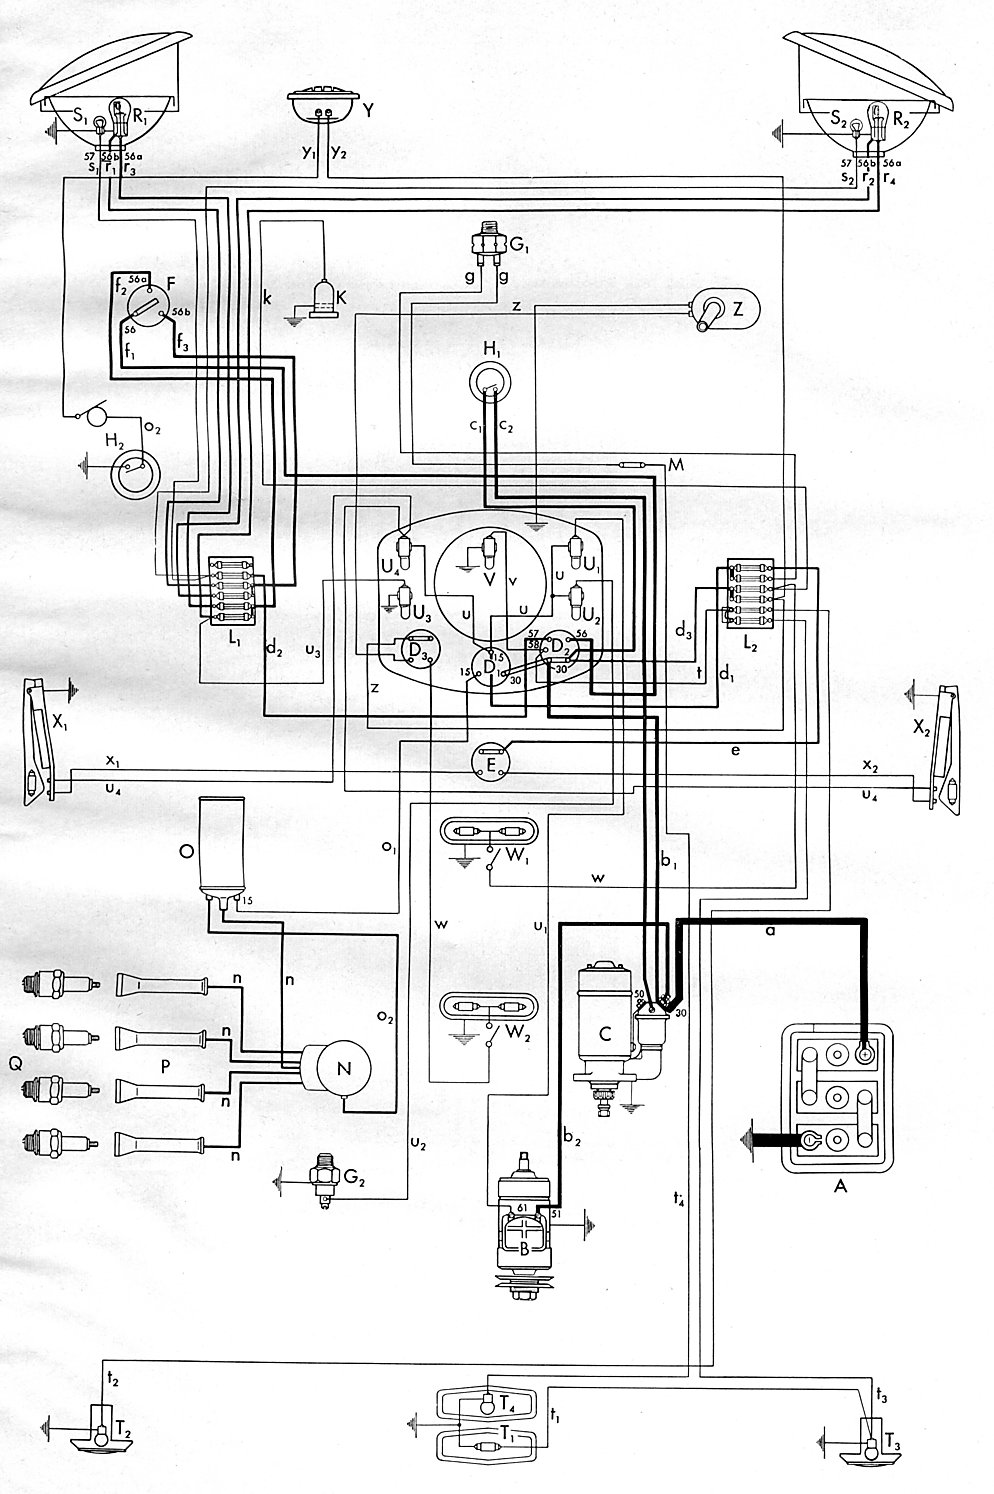 hight resolution of 1953 bus wiring diagram thegoldenbug com rh thegoldenbug com wiring diagrams for 2007 volkswagen volkswagen dune buggy wiring